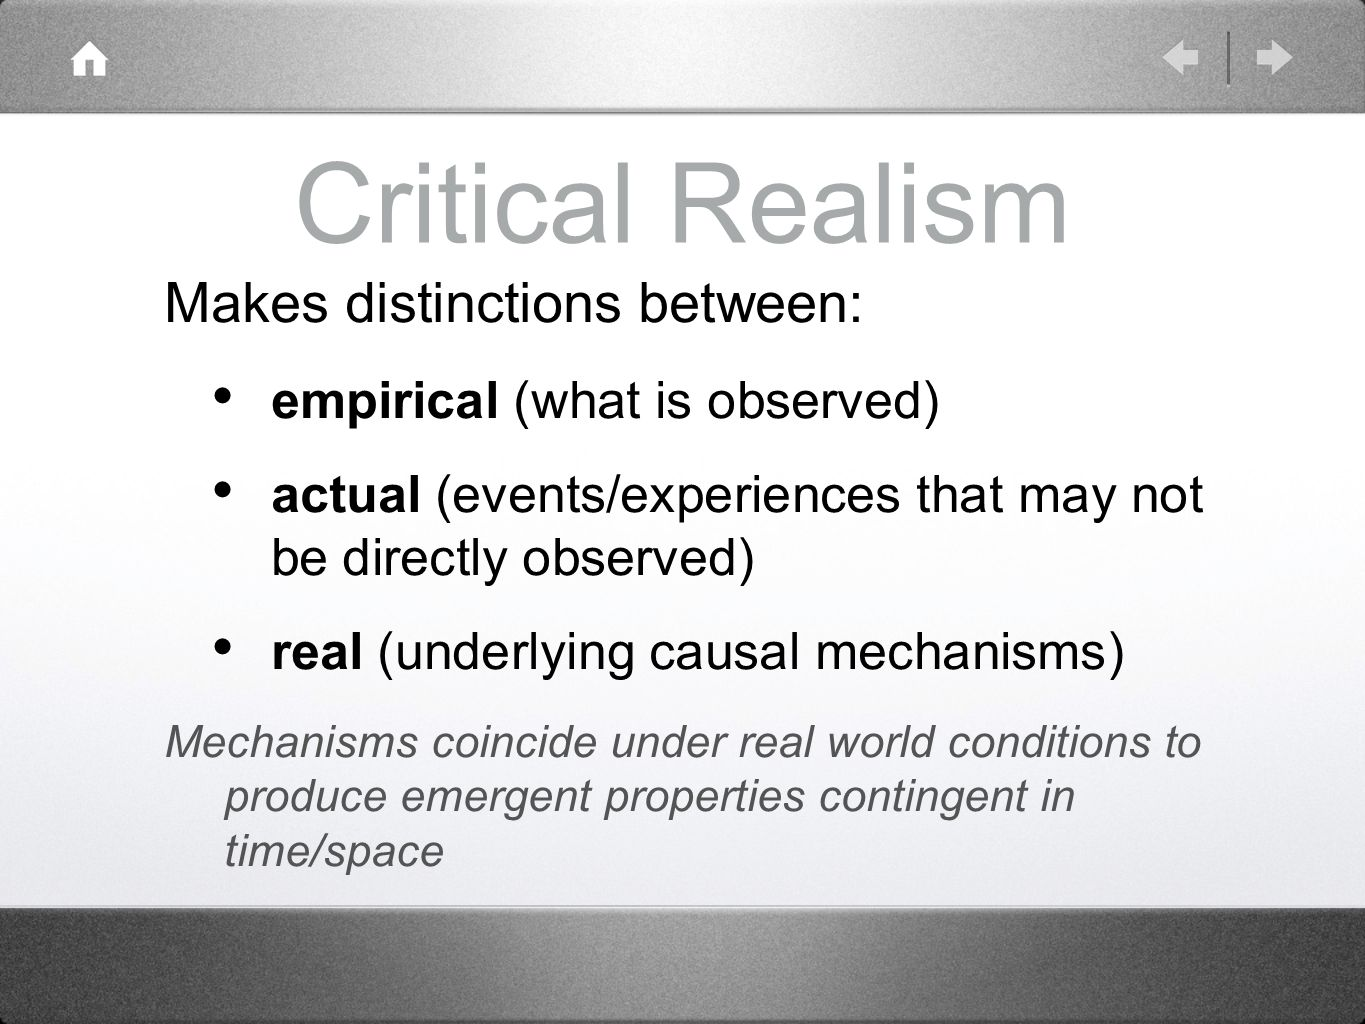 Critical Realism Makes distinctions between: empirical (what is observed) actual (events/experiences that may not be directly observed) real (underlying causal mechanisms) Mechanisms coincide under real world conditions to produce emergent properties contingent in time/space